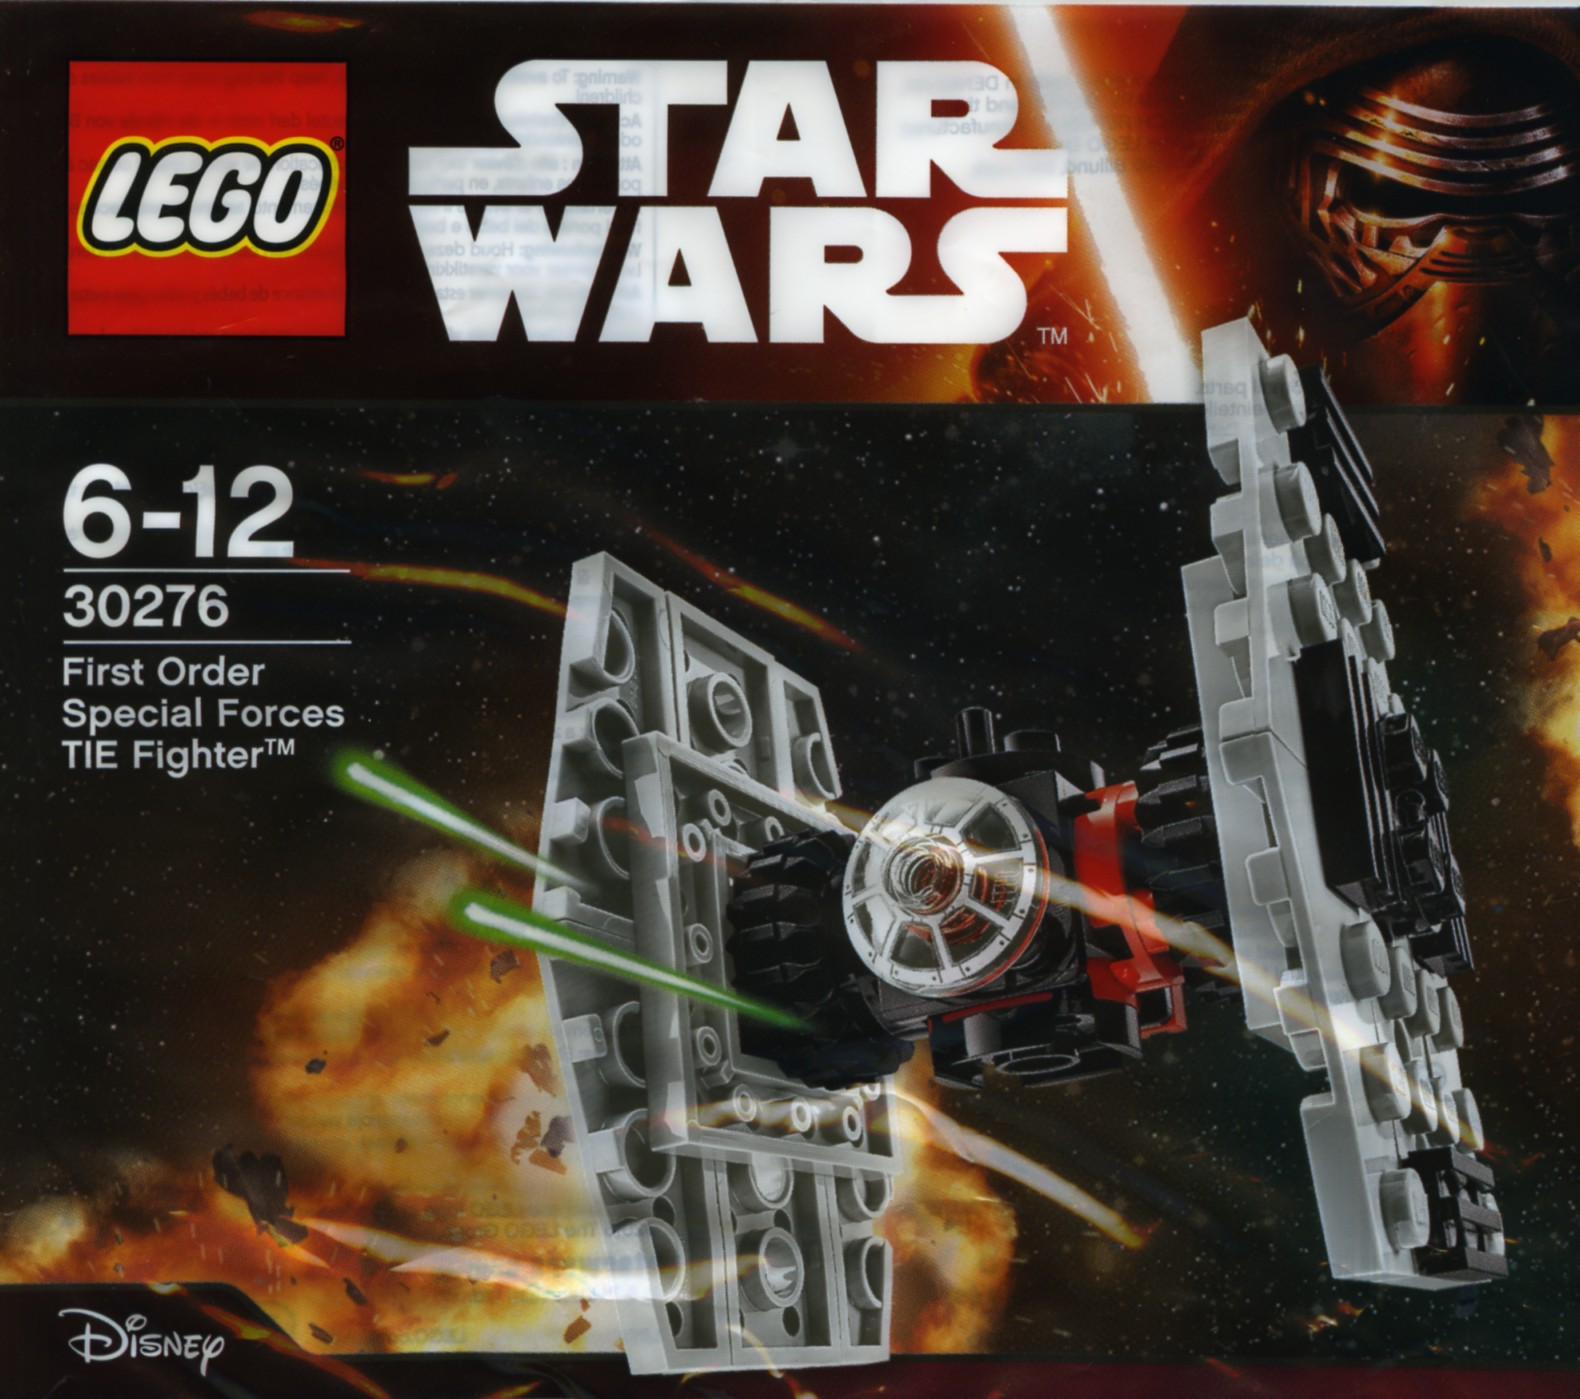 Star Wars The Force Awakens Brickset Lego Set Guide And